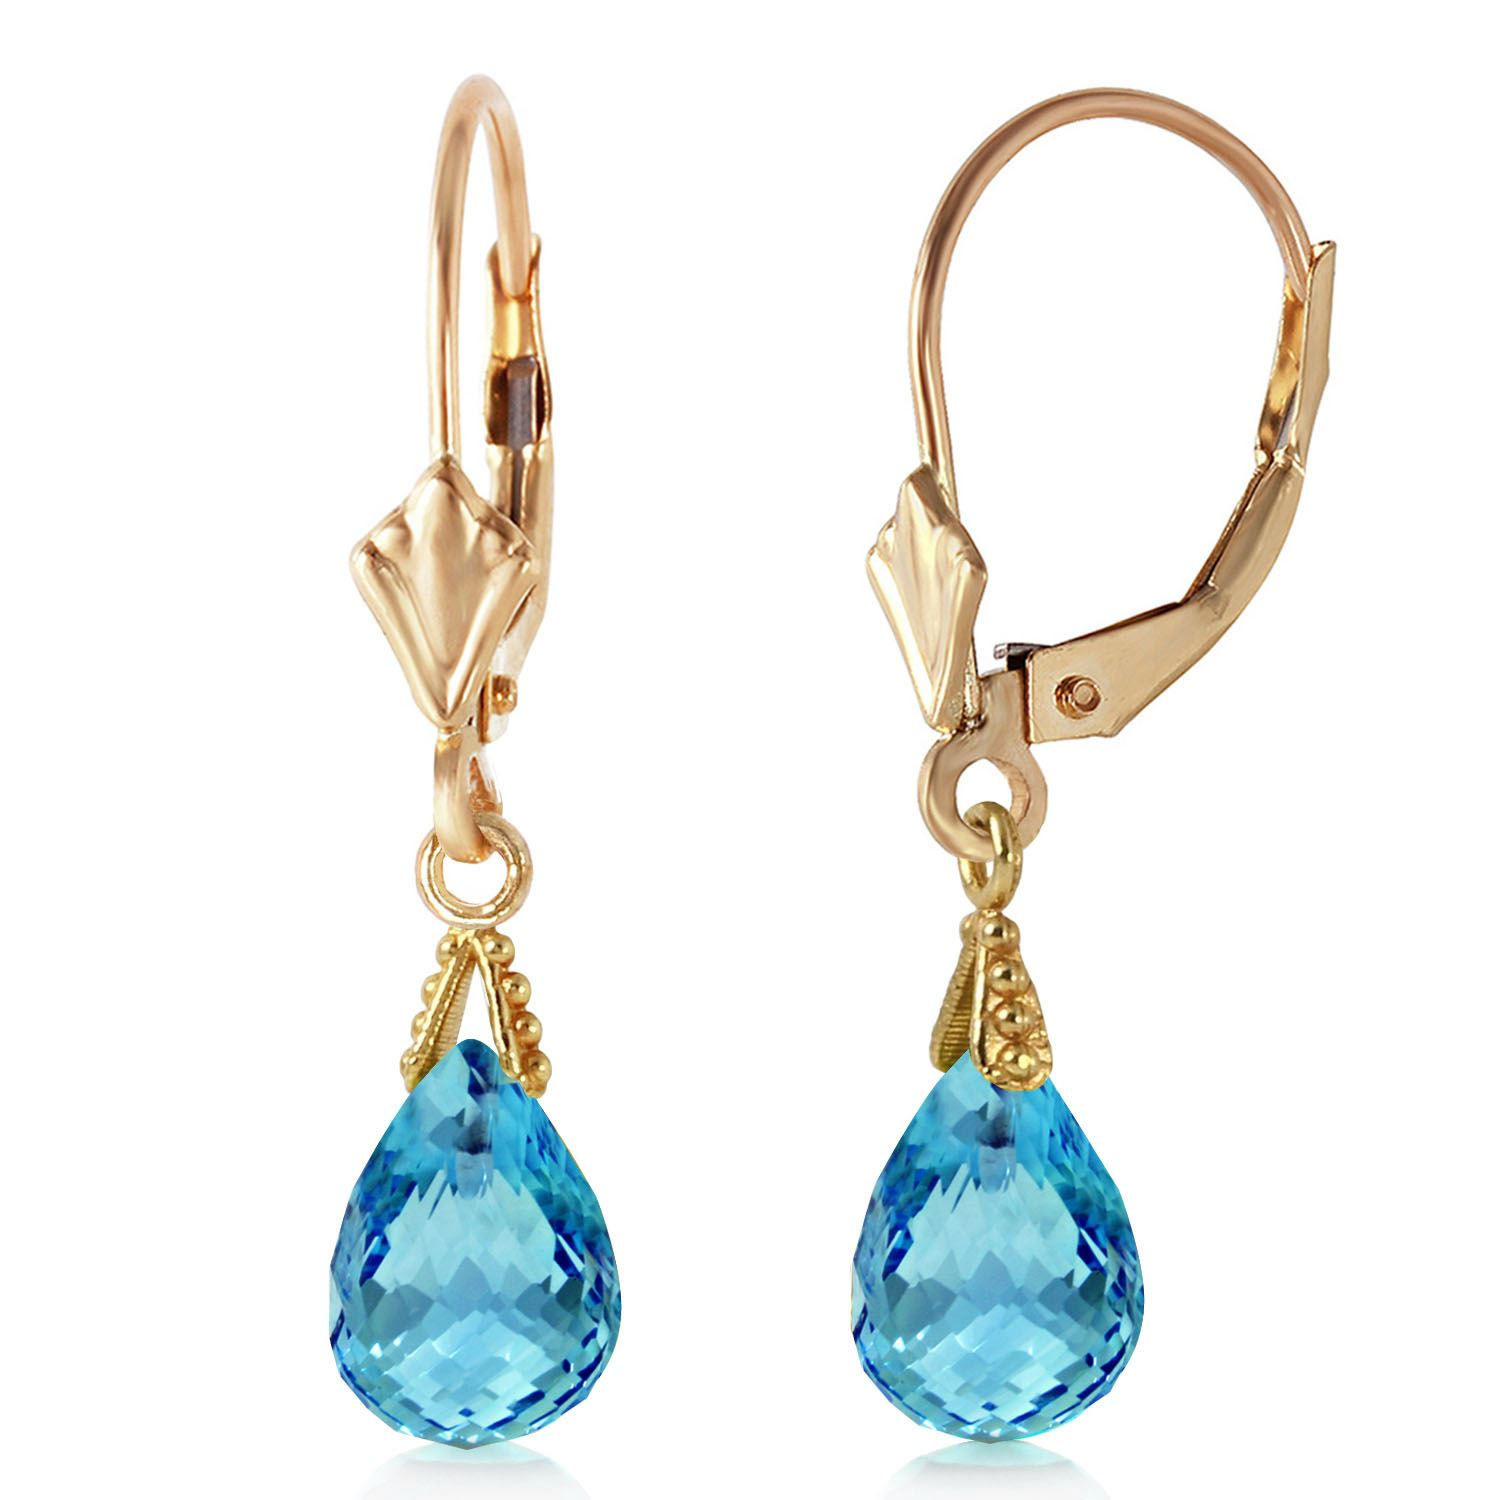 blue gemstone lyst earrings drop gem product gallery asos jewelry in